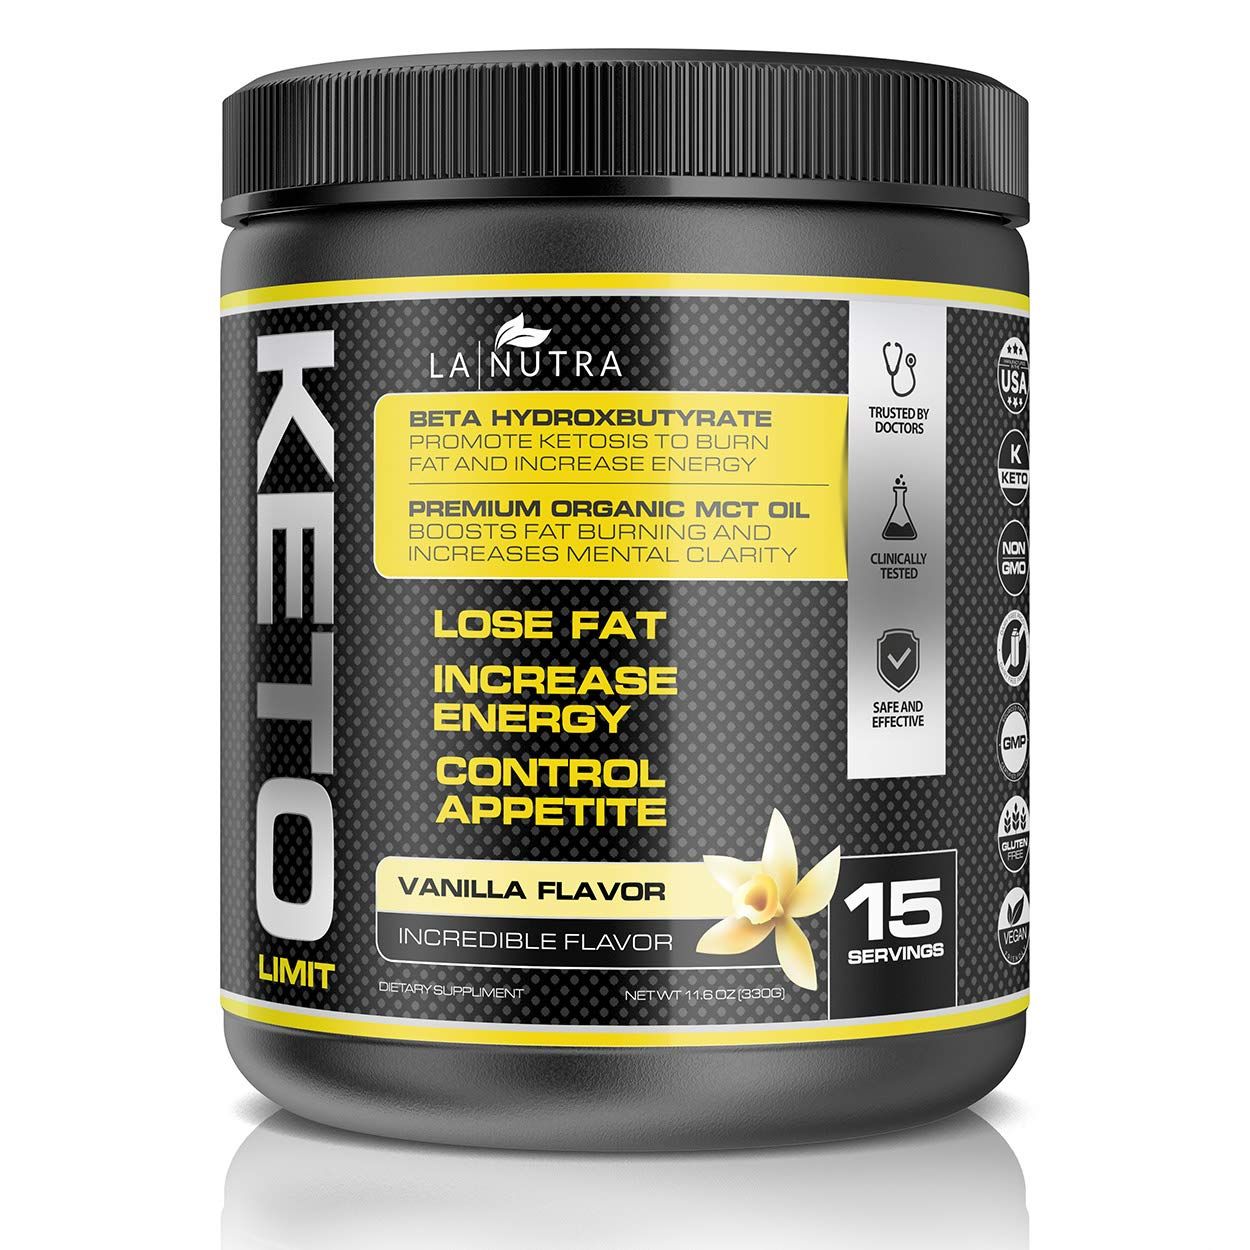 Keto Limit Vanilla Ketogenic Diet Supplement〡BHB Exogenous Ketones and MCT Oil Keto Powder to Burn Fat, Promote Mental Focus and Natural Energy. Achieve Ketosis w/Our Non-GMO Keto Supplement by Keto Limit